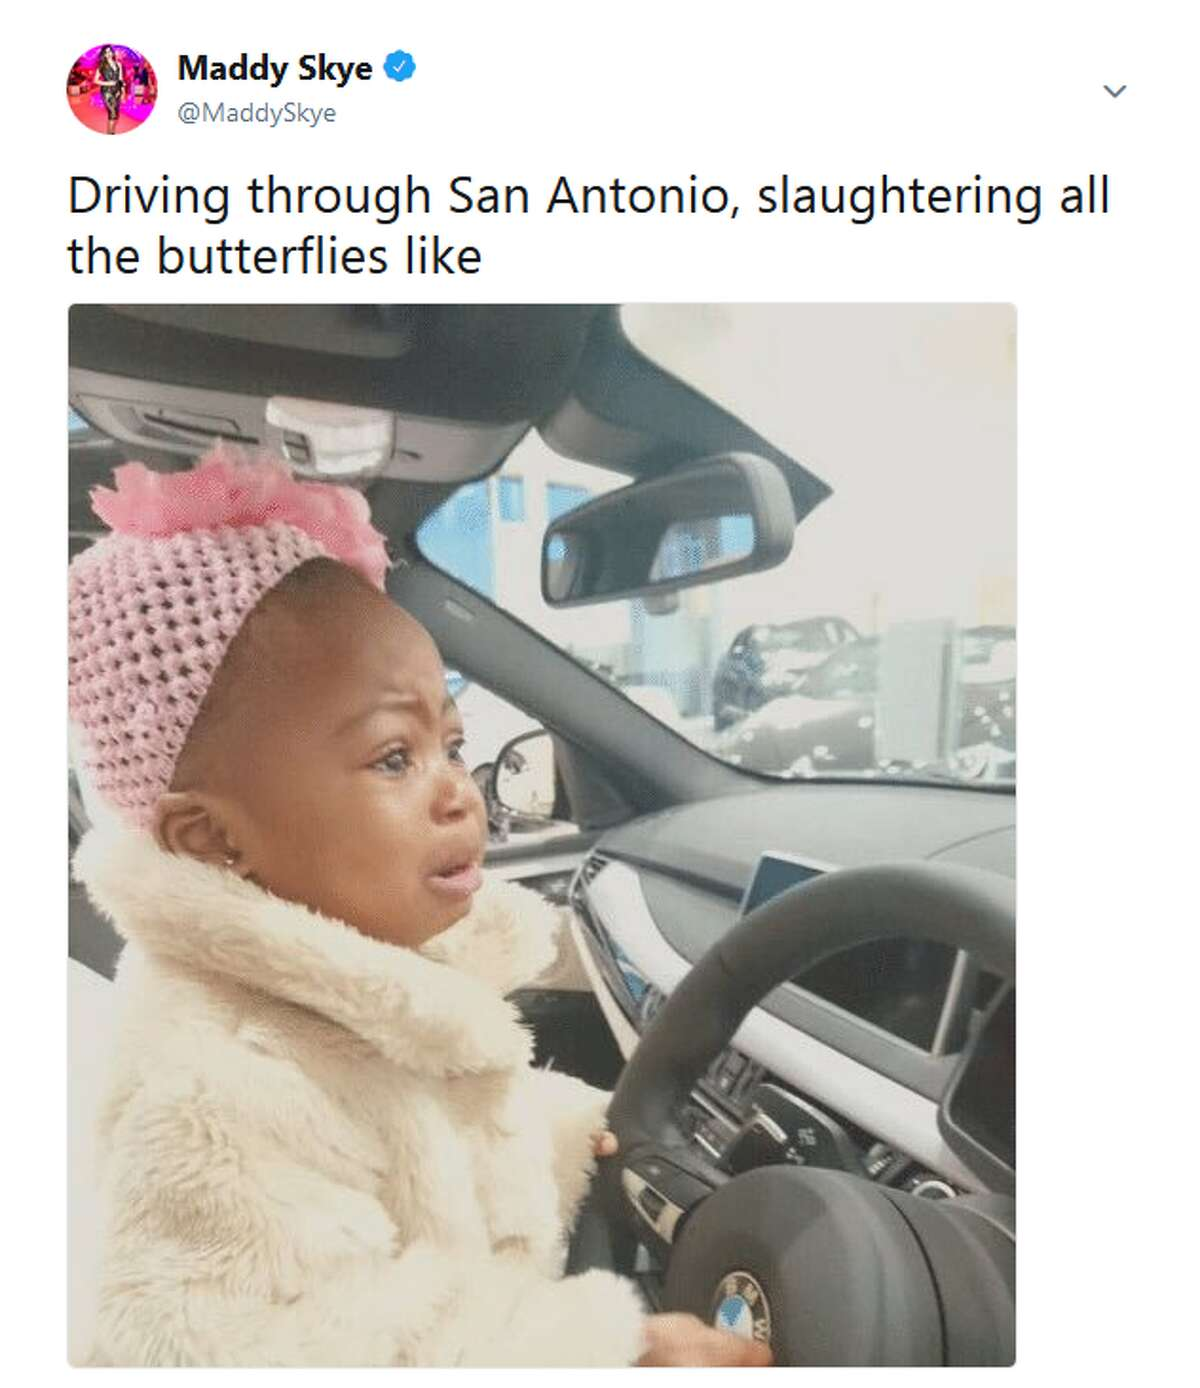 @MaddySkye: Driving through San Antonio, slaughtering all the butterflies like